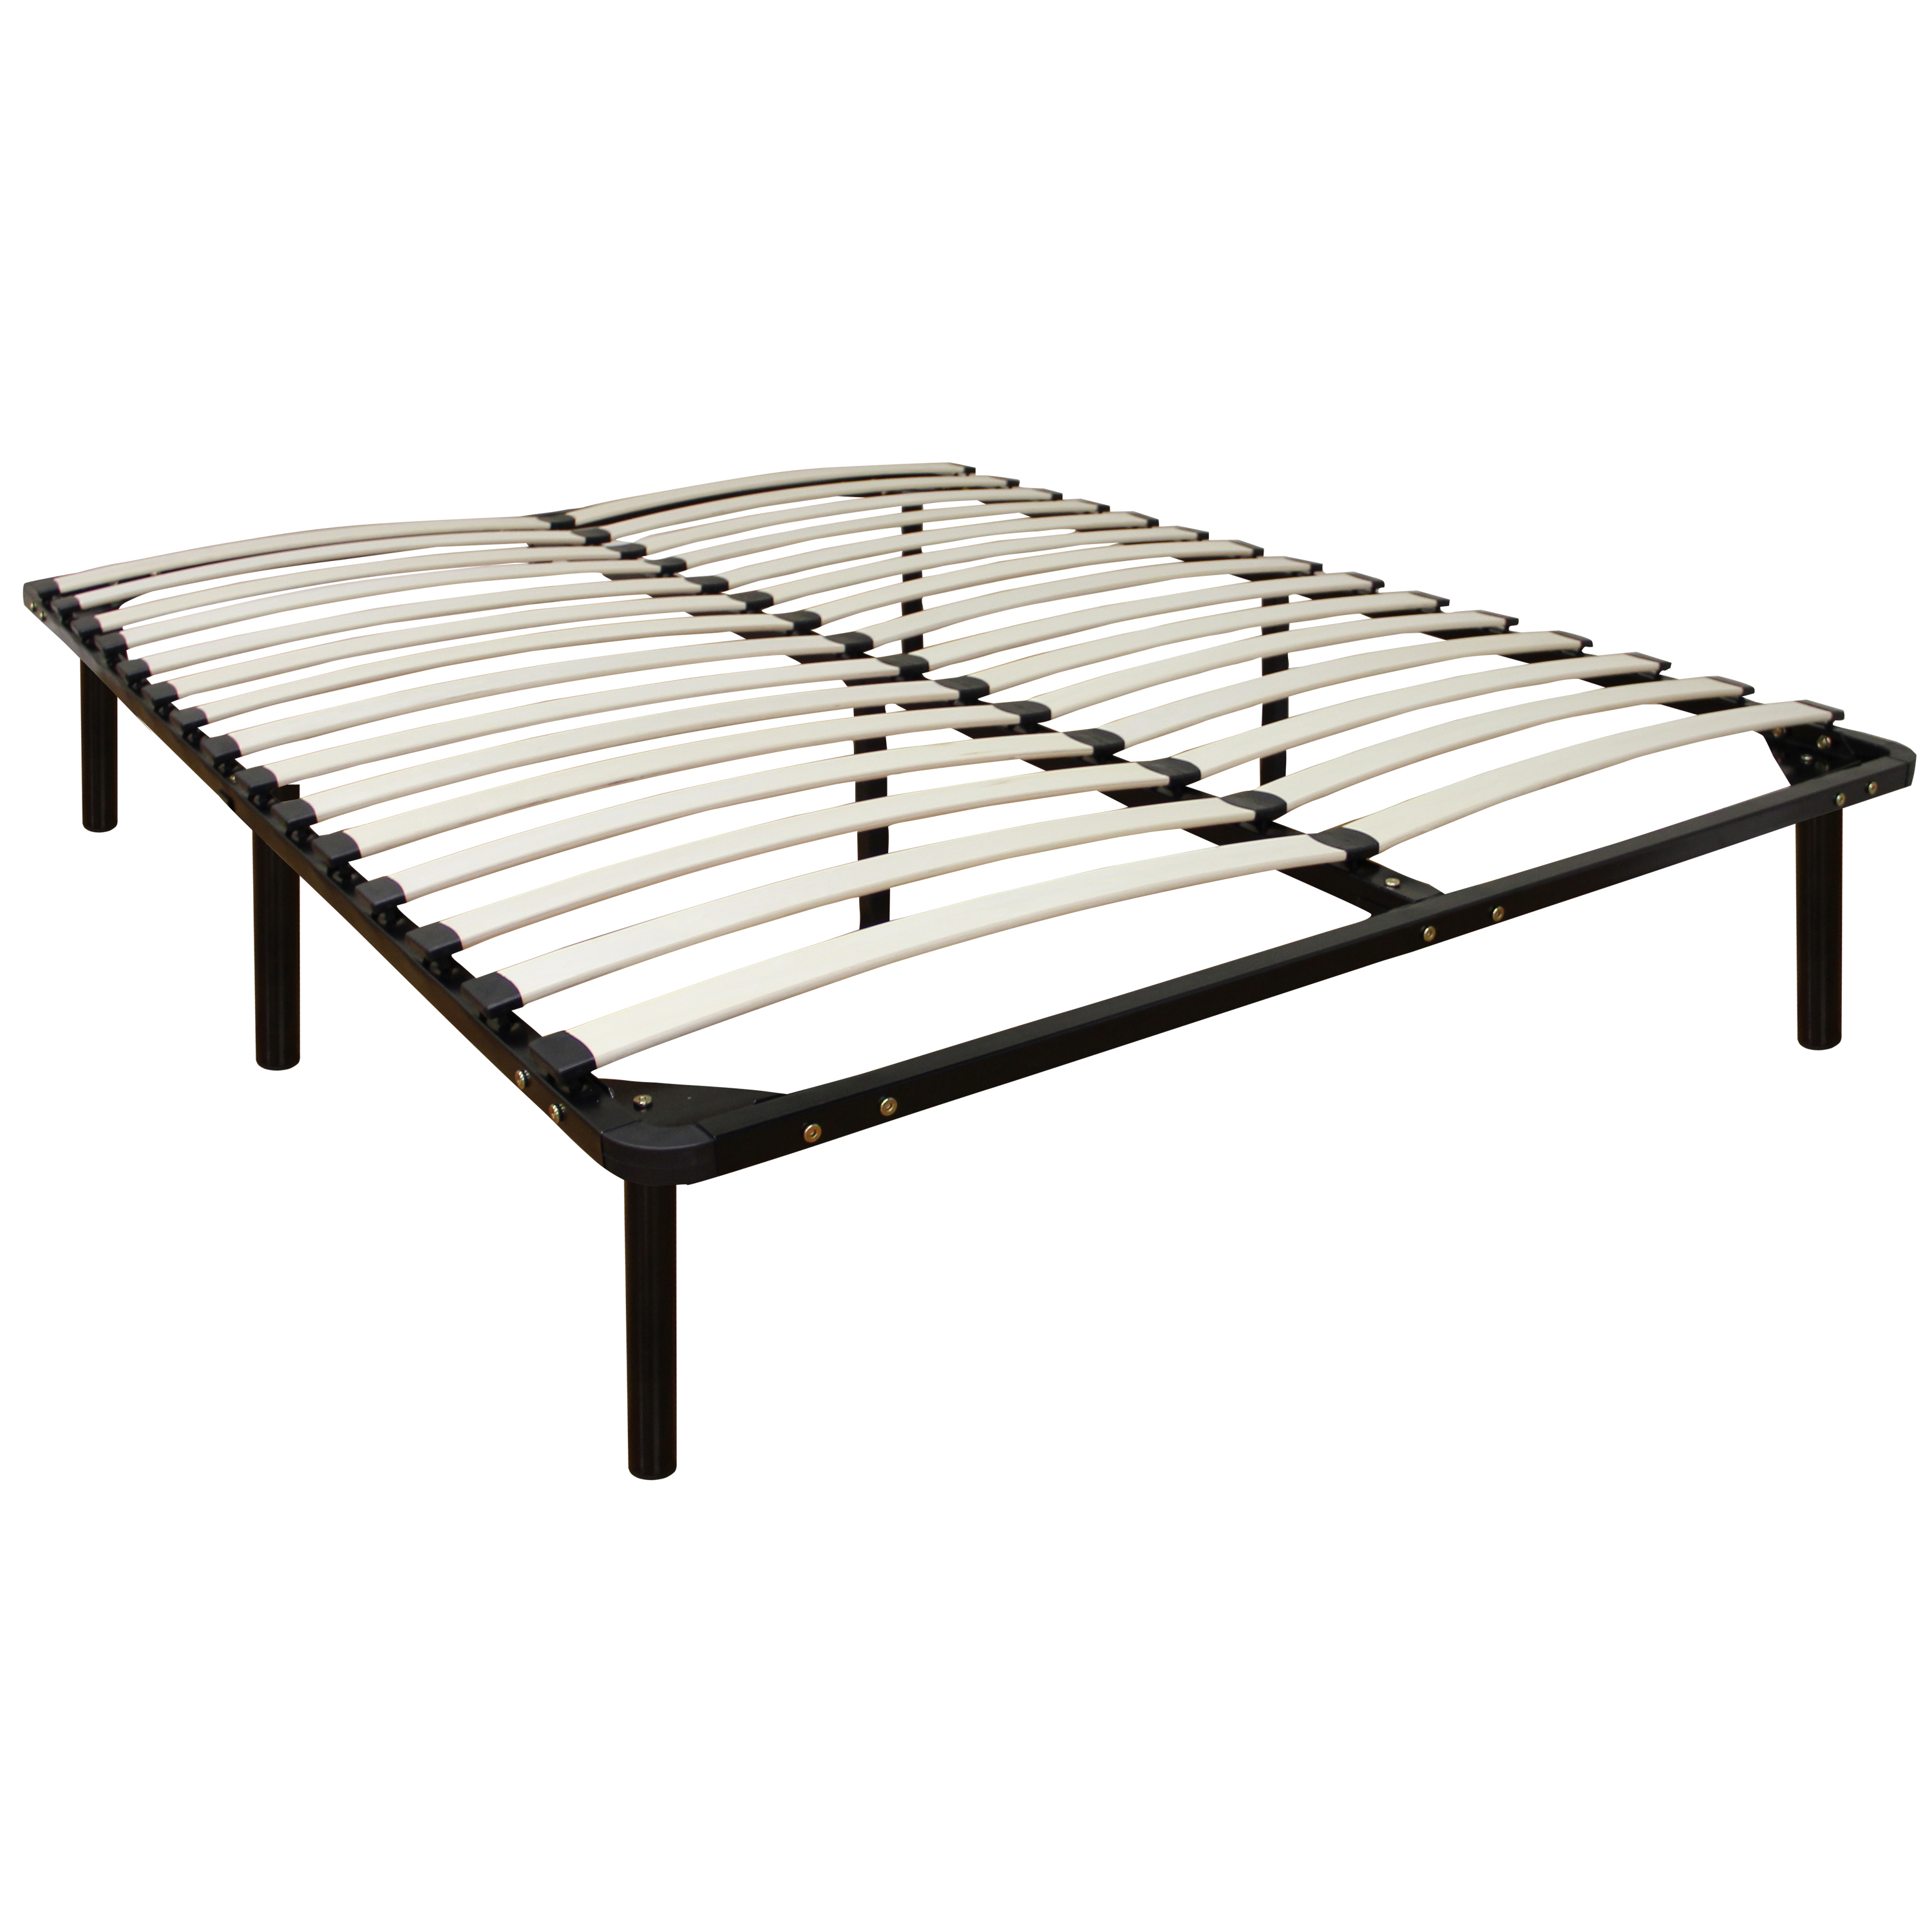 Trysil Bed Frame From Ikea Full Sized